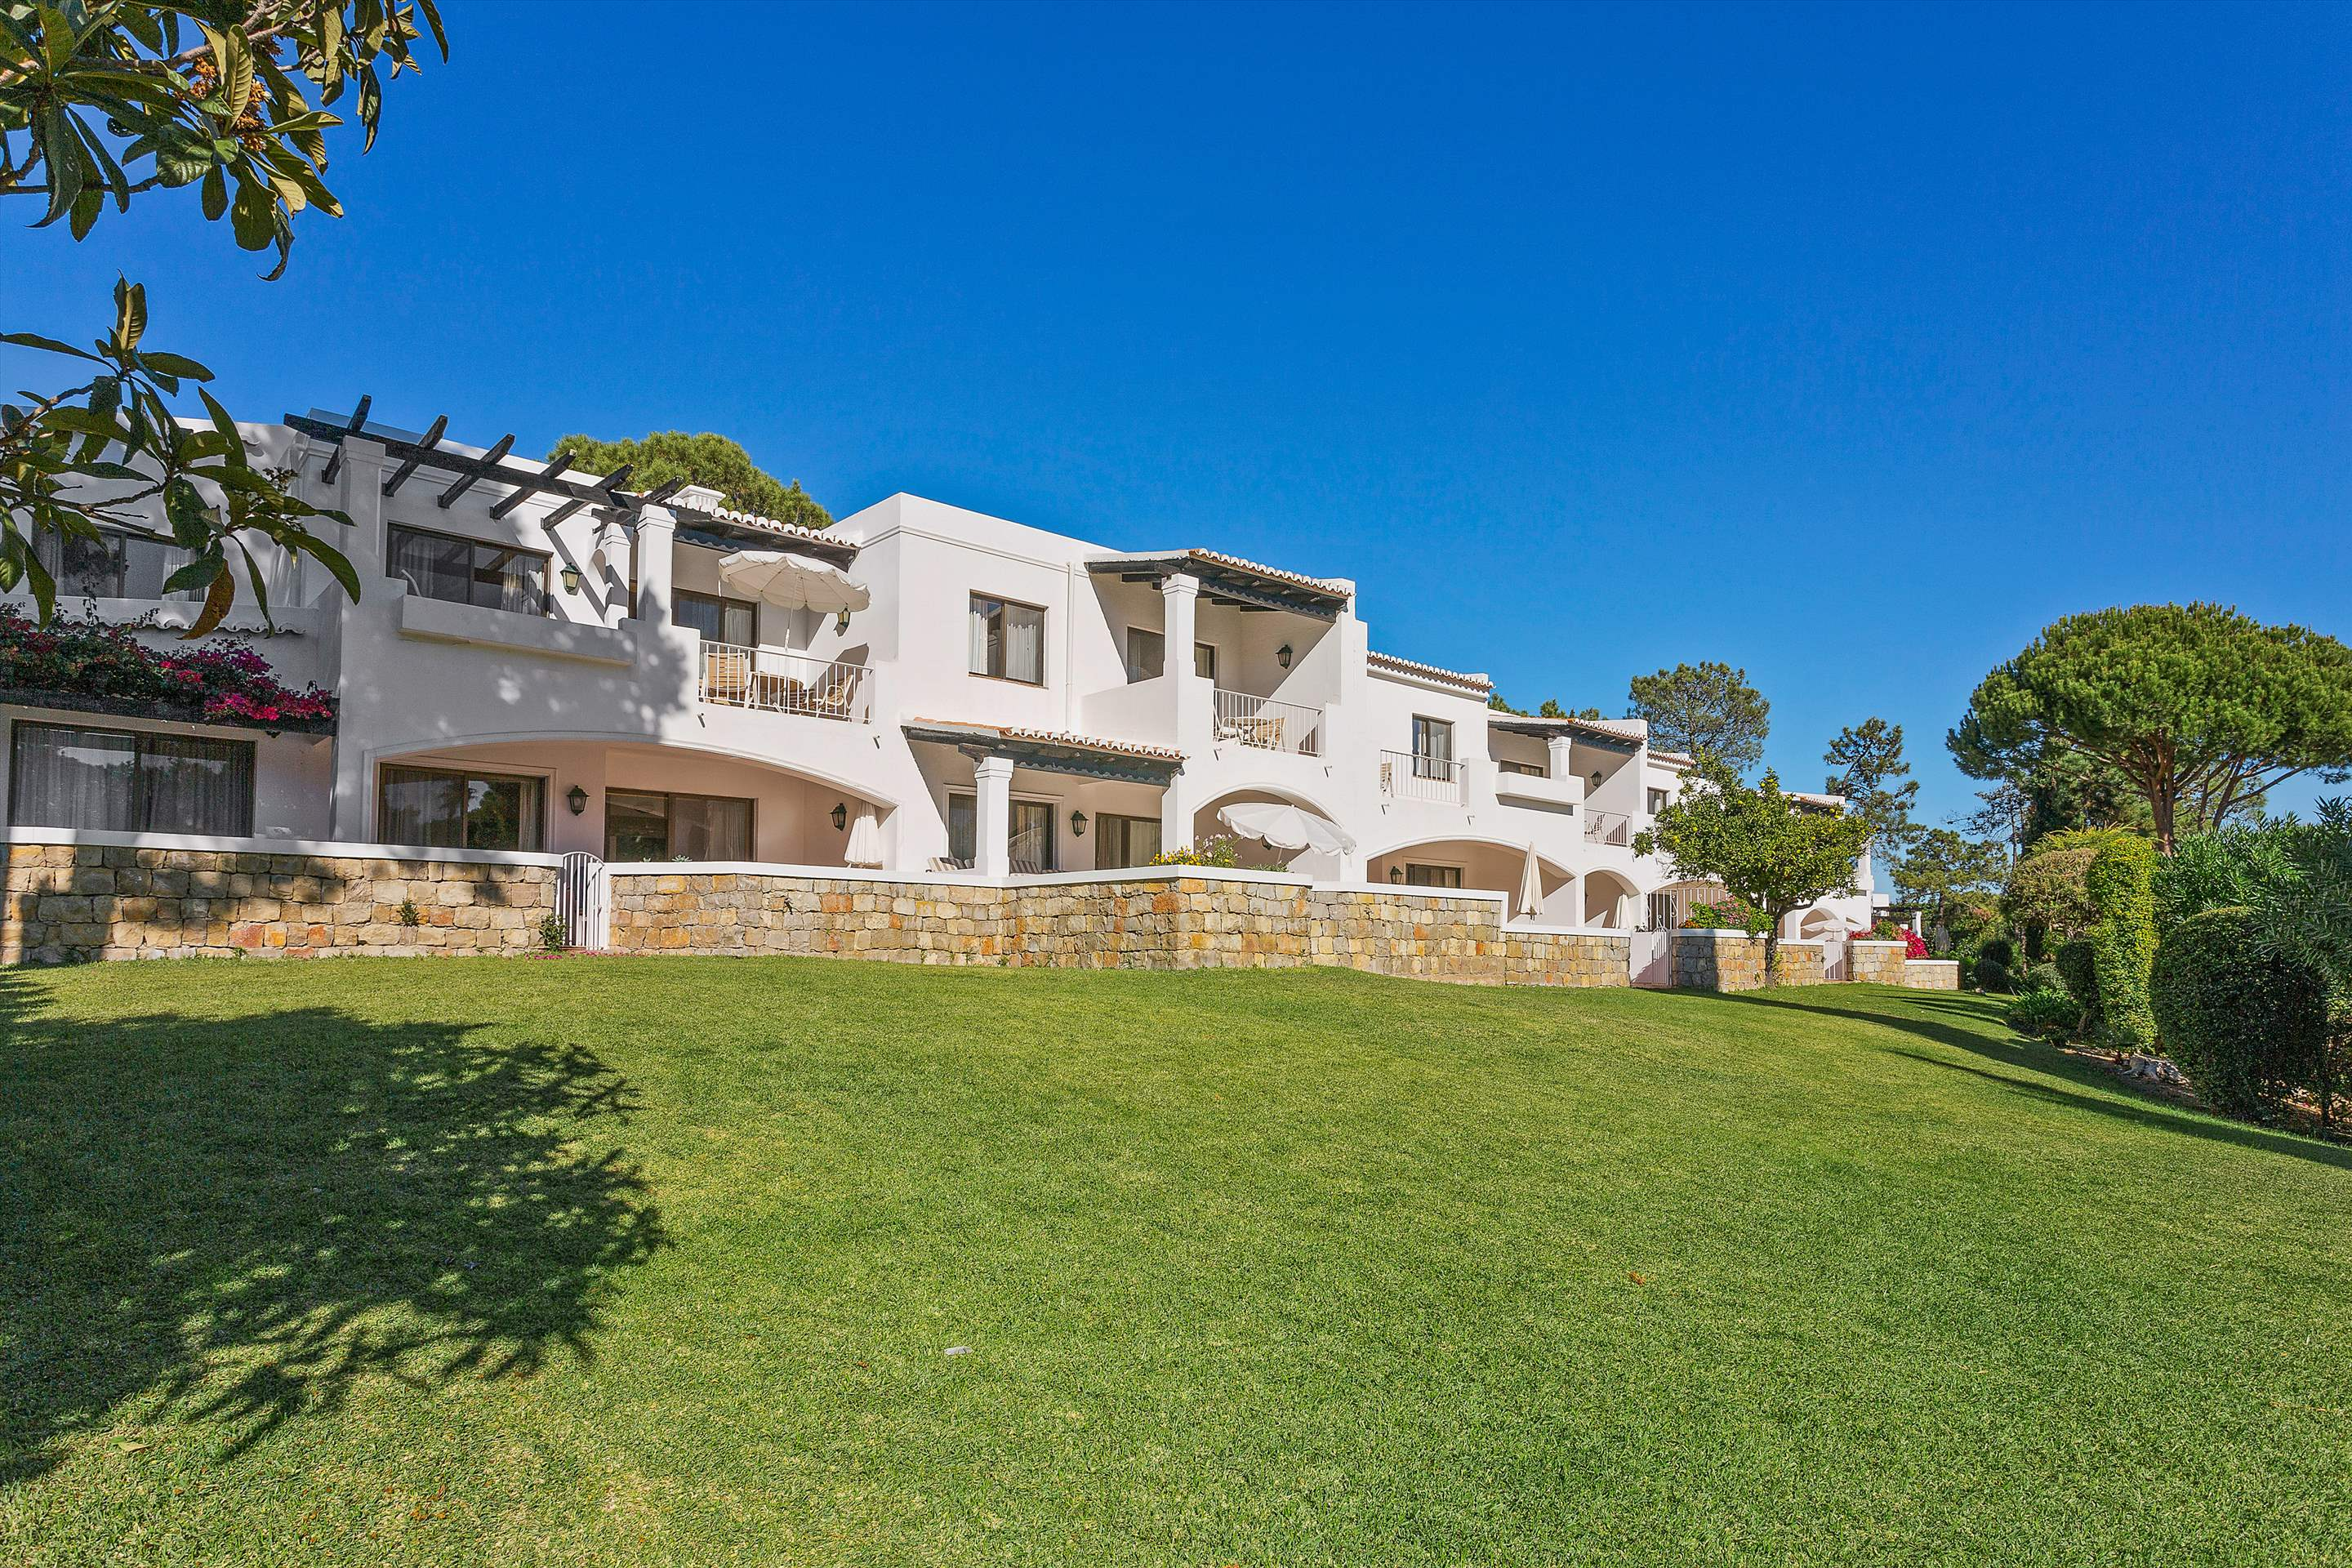 Four Seasons Country Club 2 bed, Superior - Sunday Arrival, 2 bedroom apartment in Four Seasons Country Club, Algarve